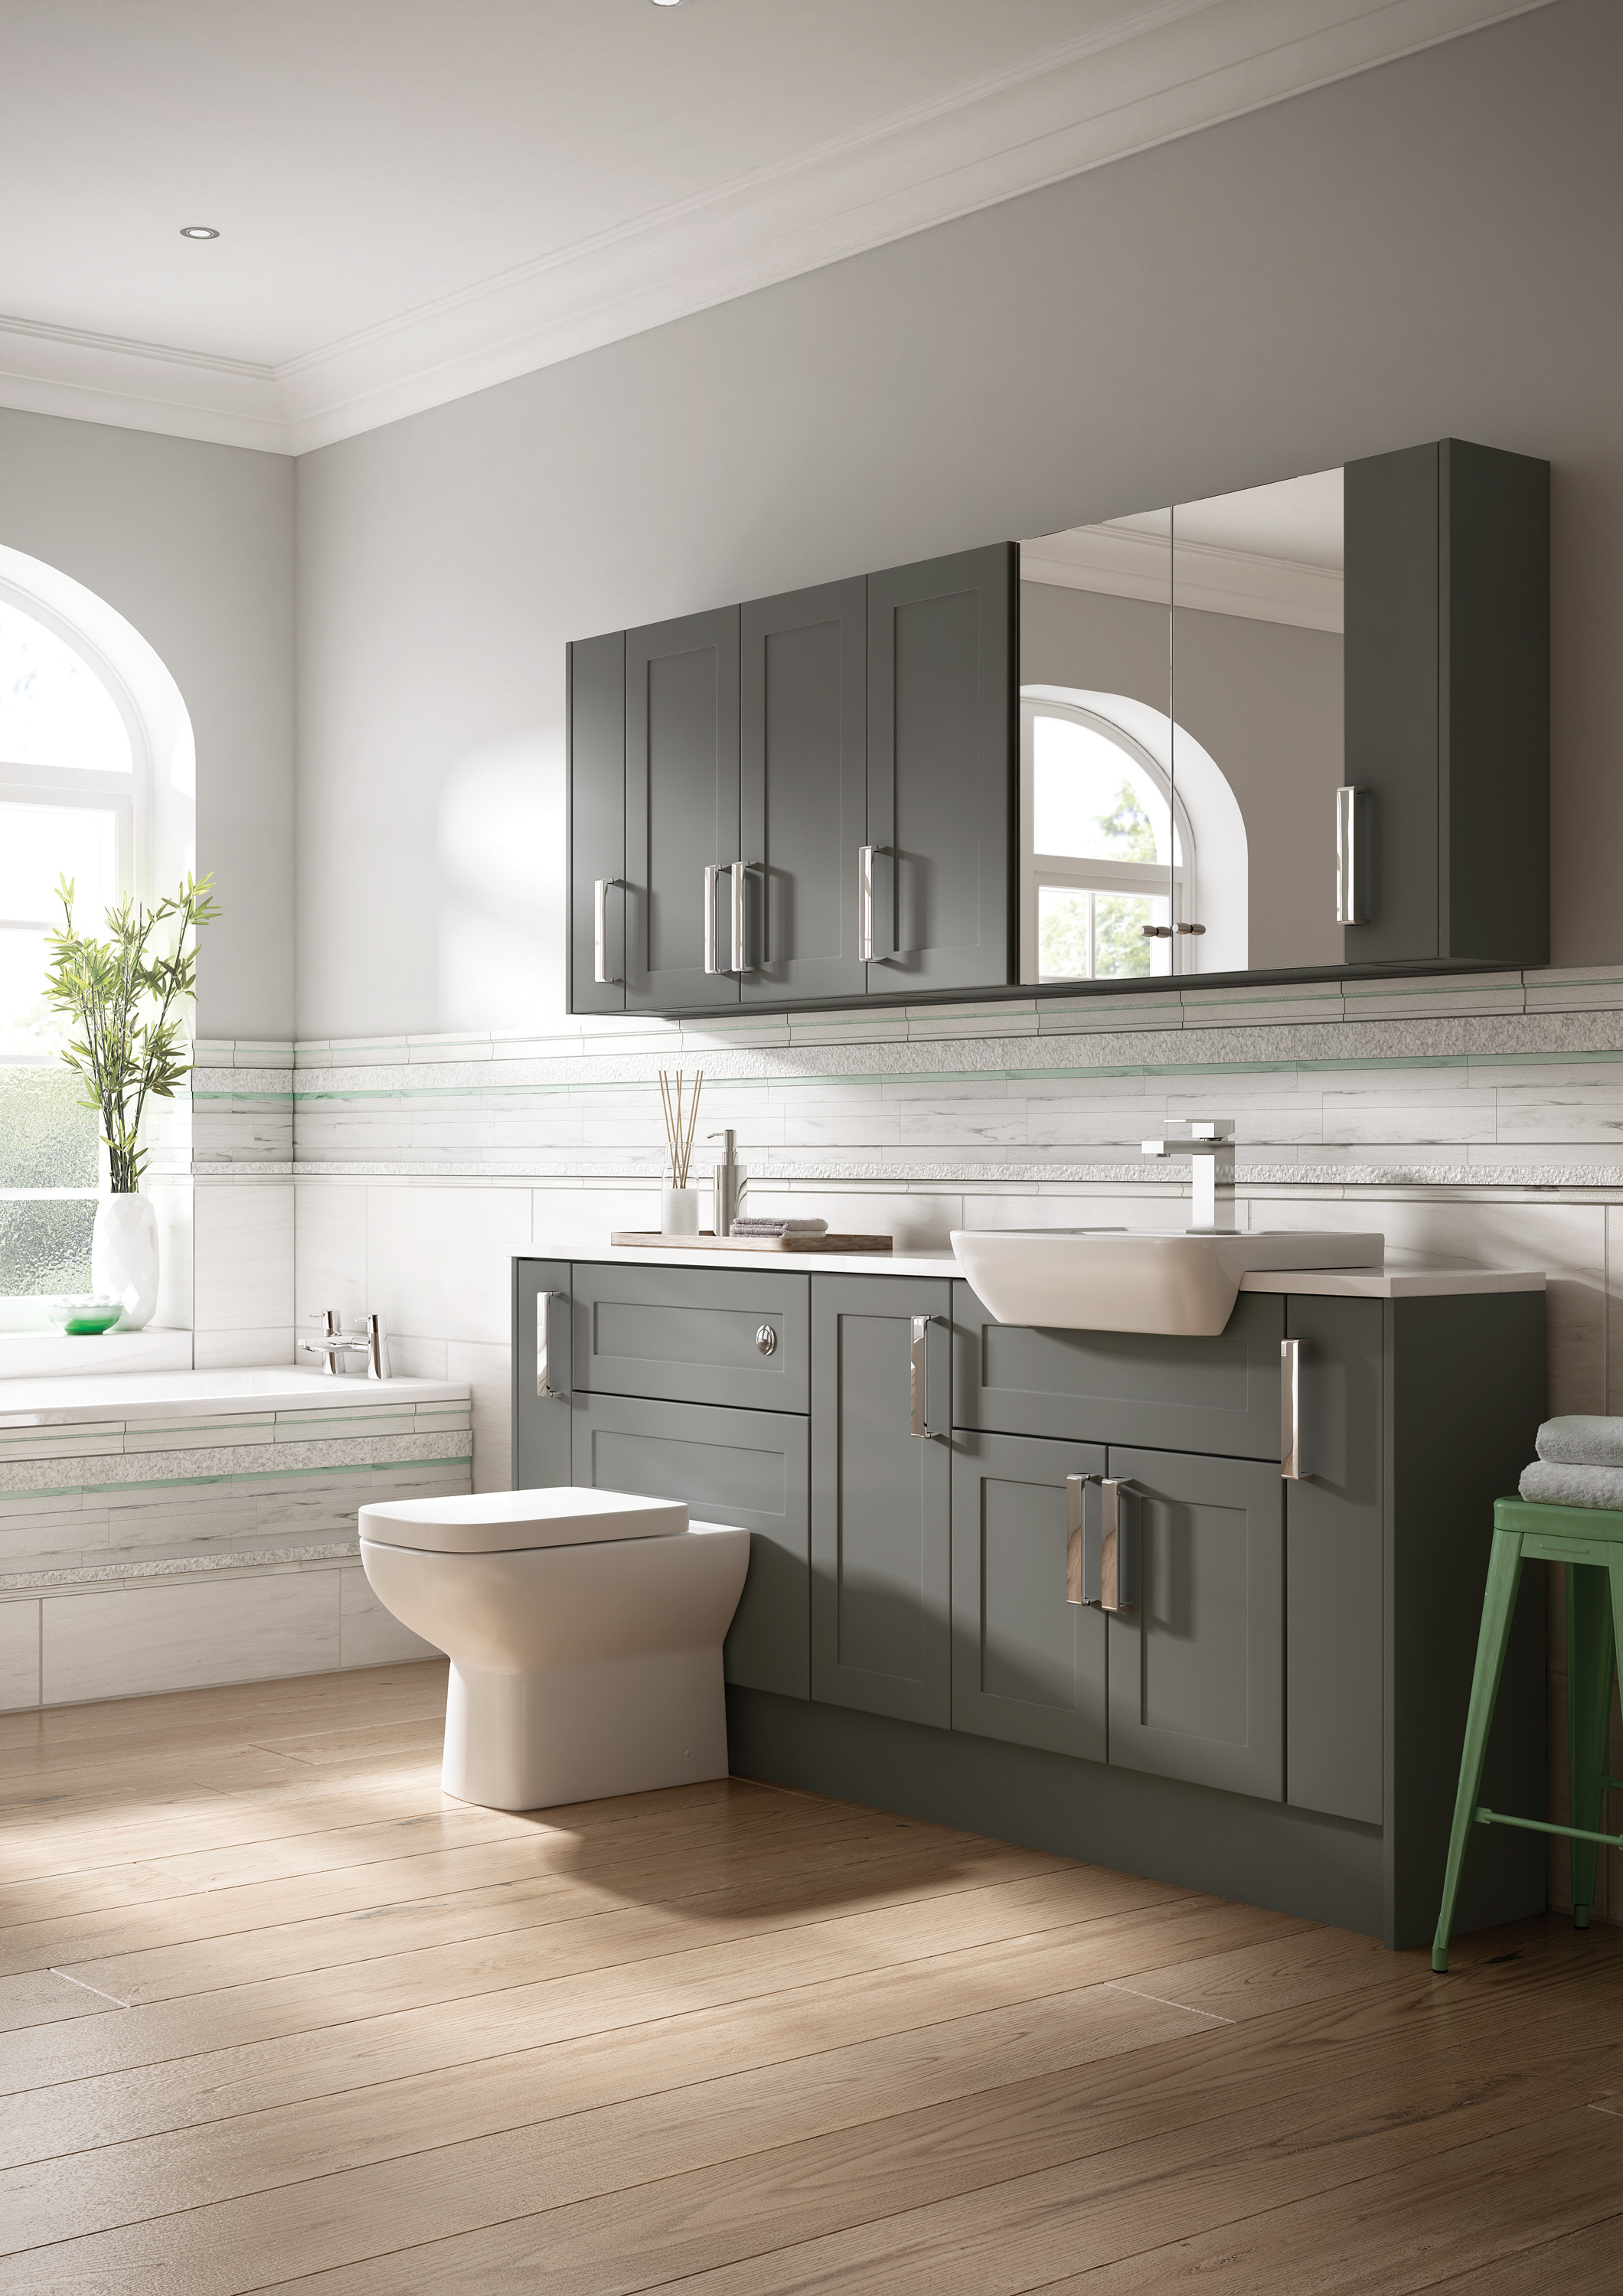 Gallery - Glasgow Bathroom Showroom - Hillington